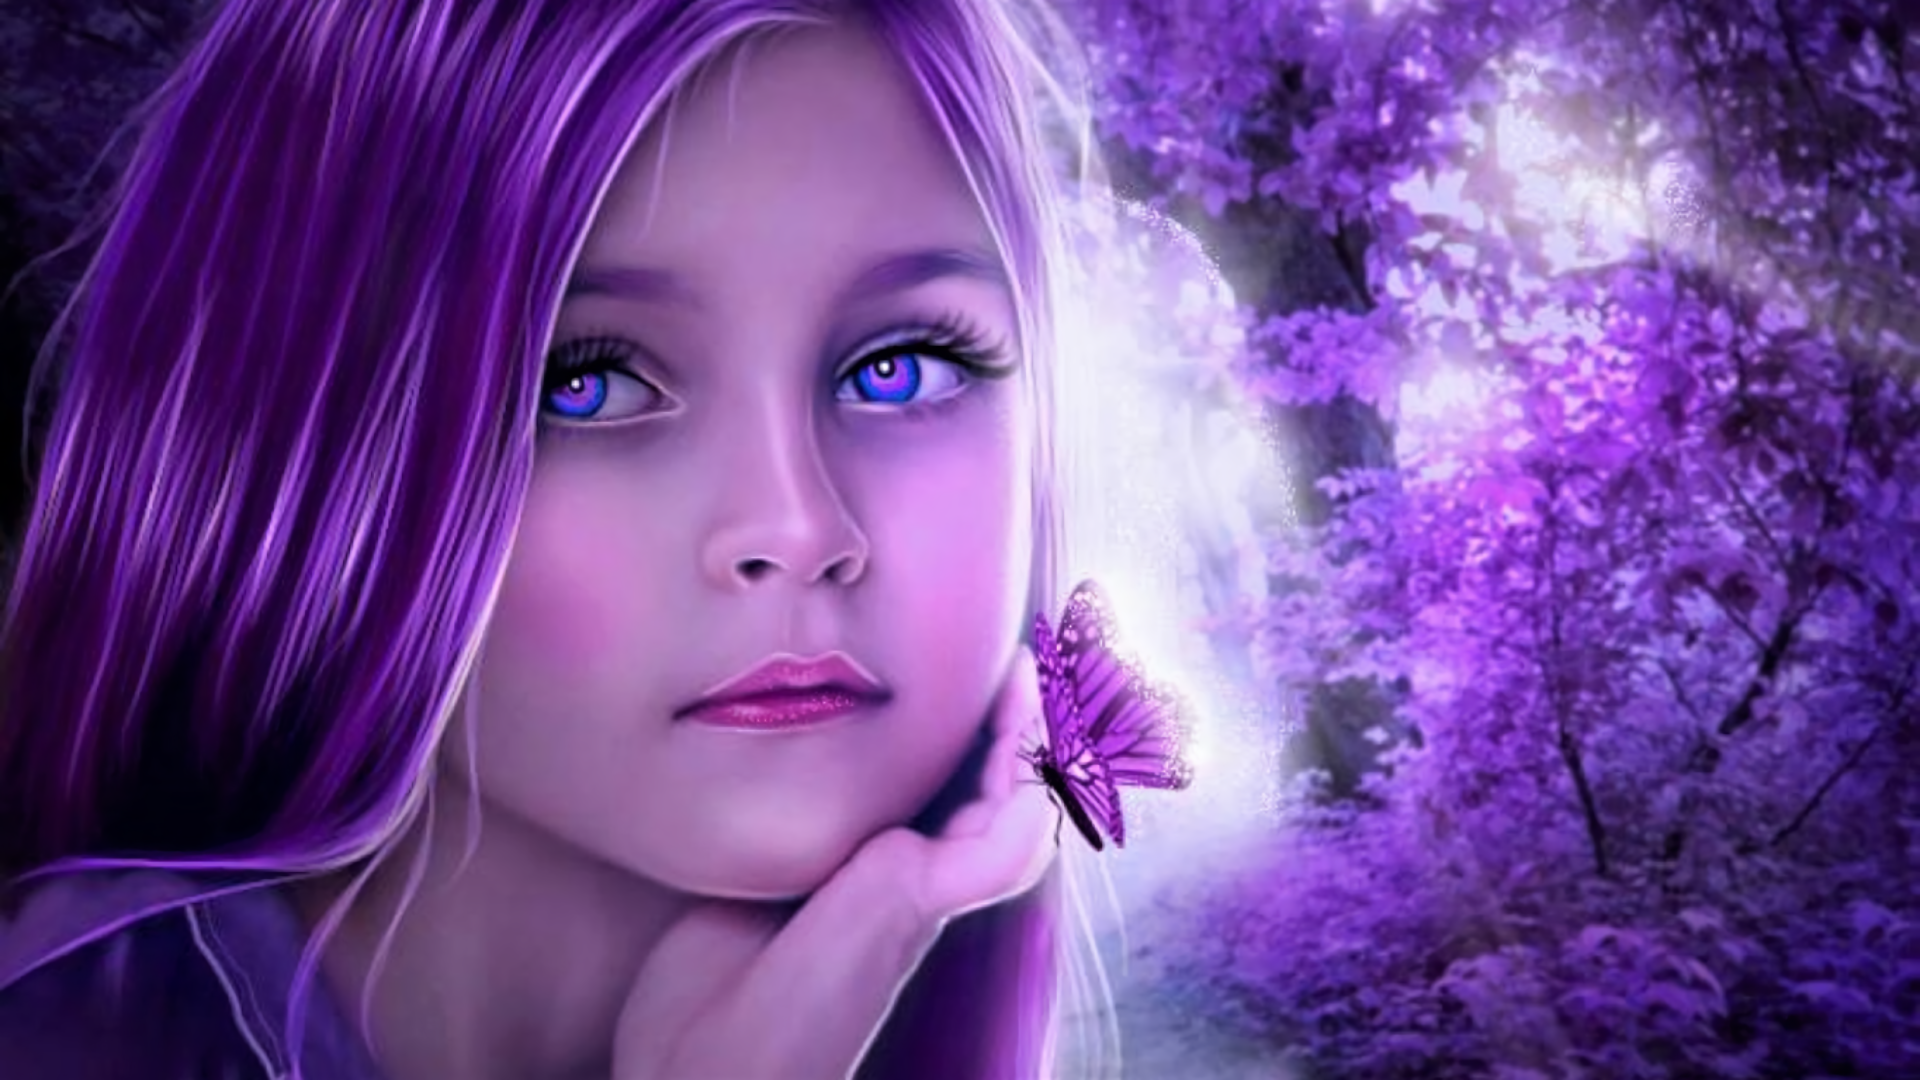 Wallpapers ID:881512